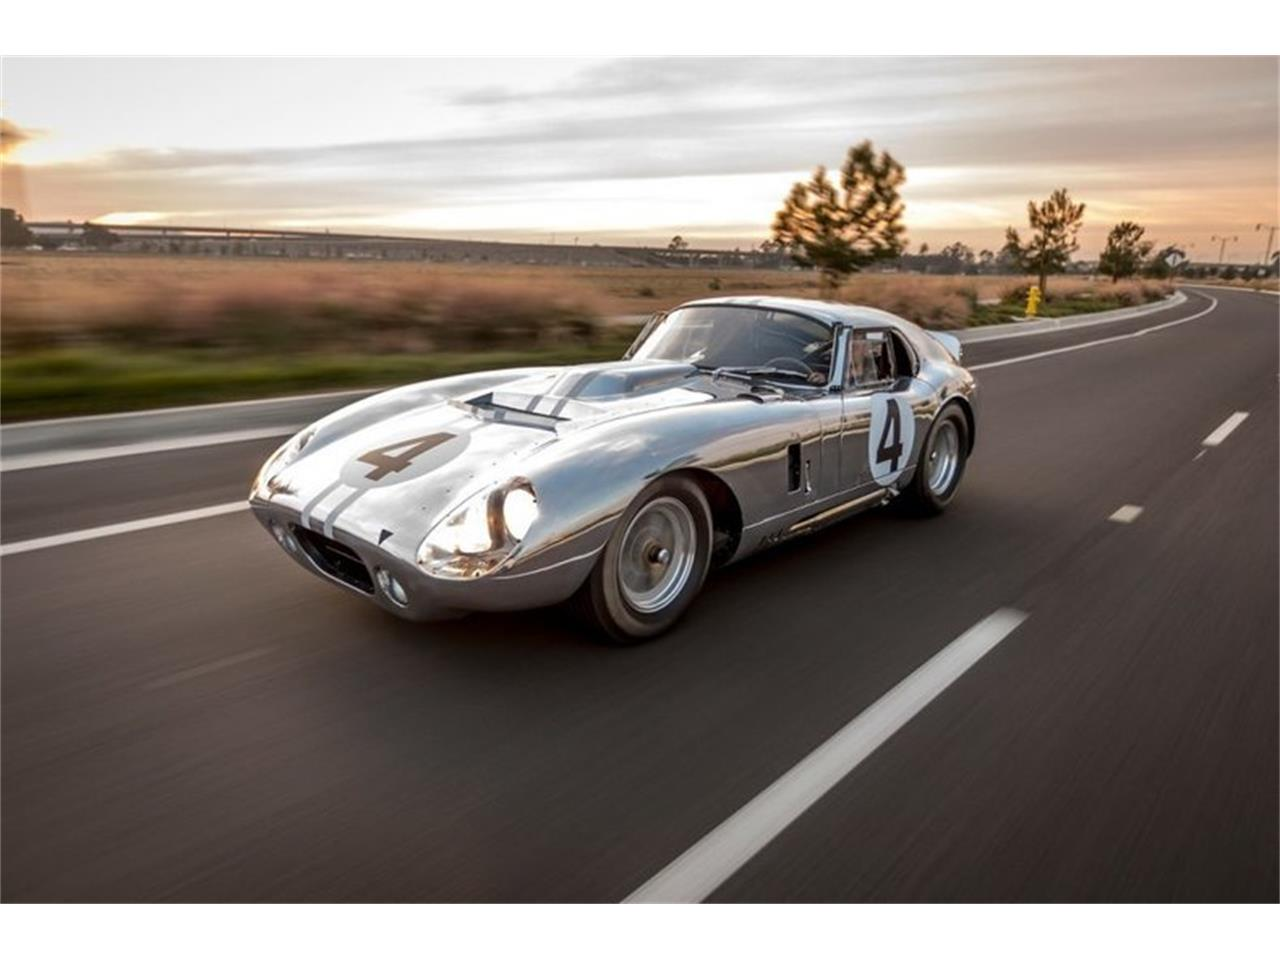 Large Picture of Classic 1900 Superformance Cobra - $495,000.00 Offered by Hillbank Motorsports - PNUV